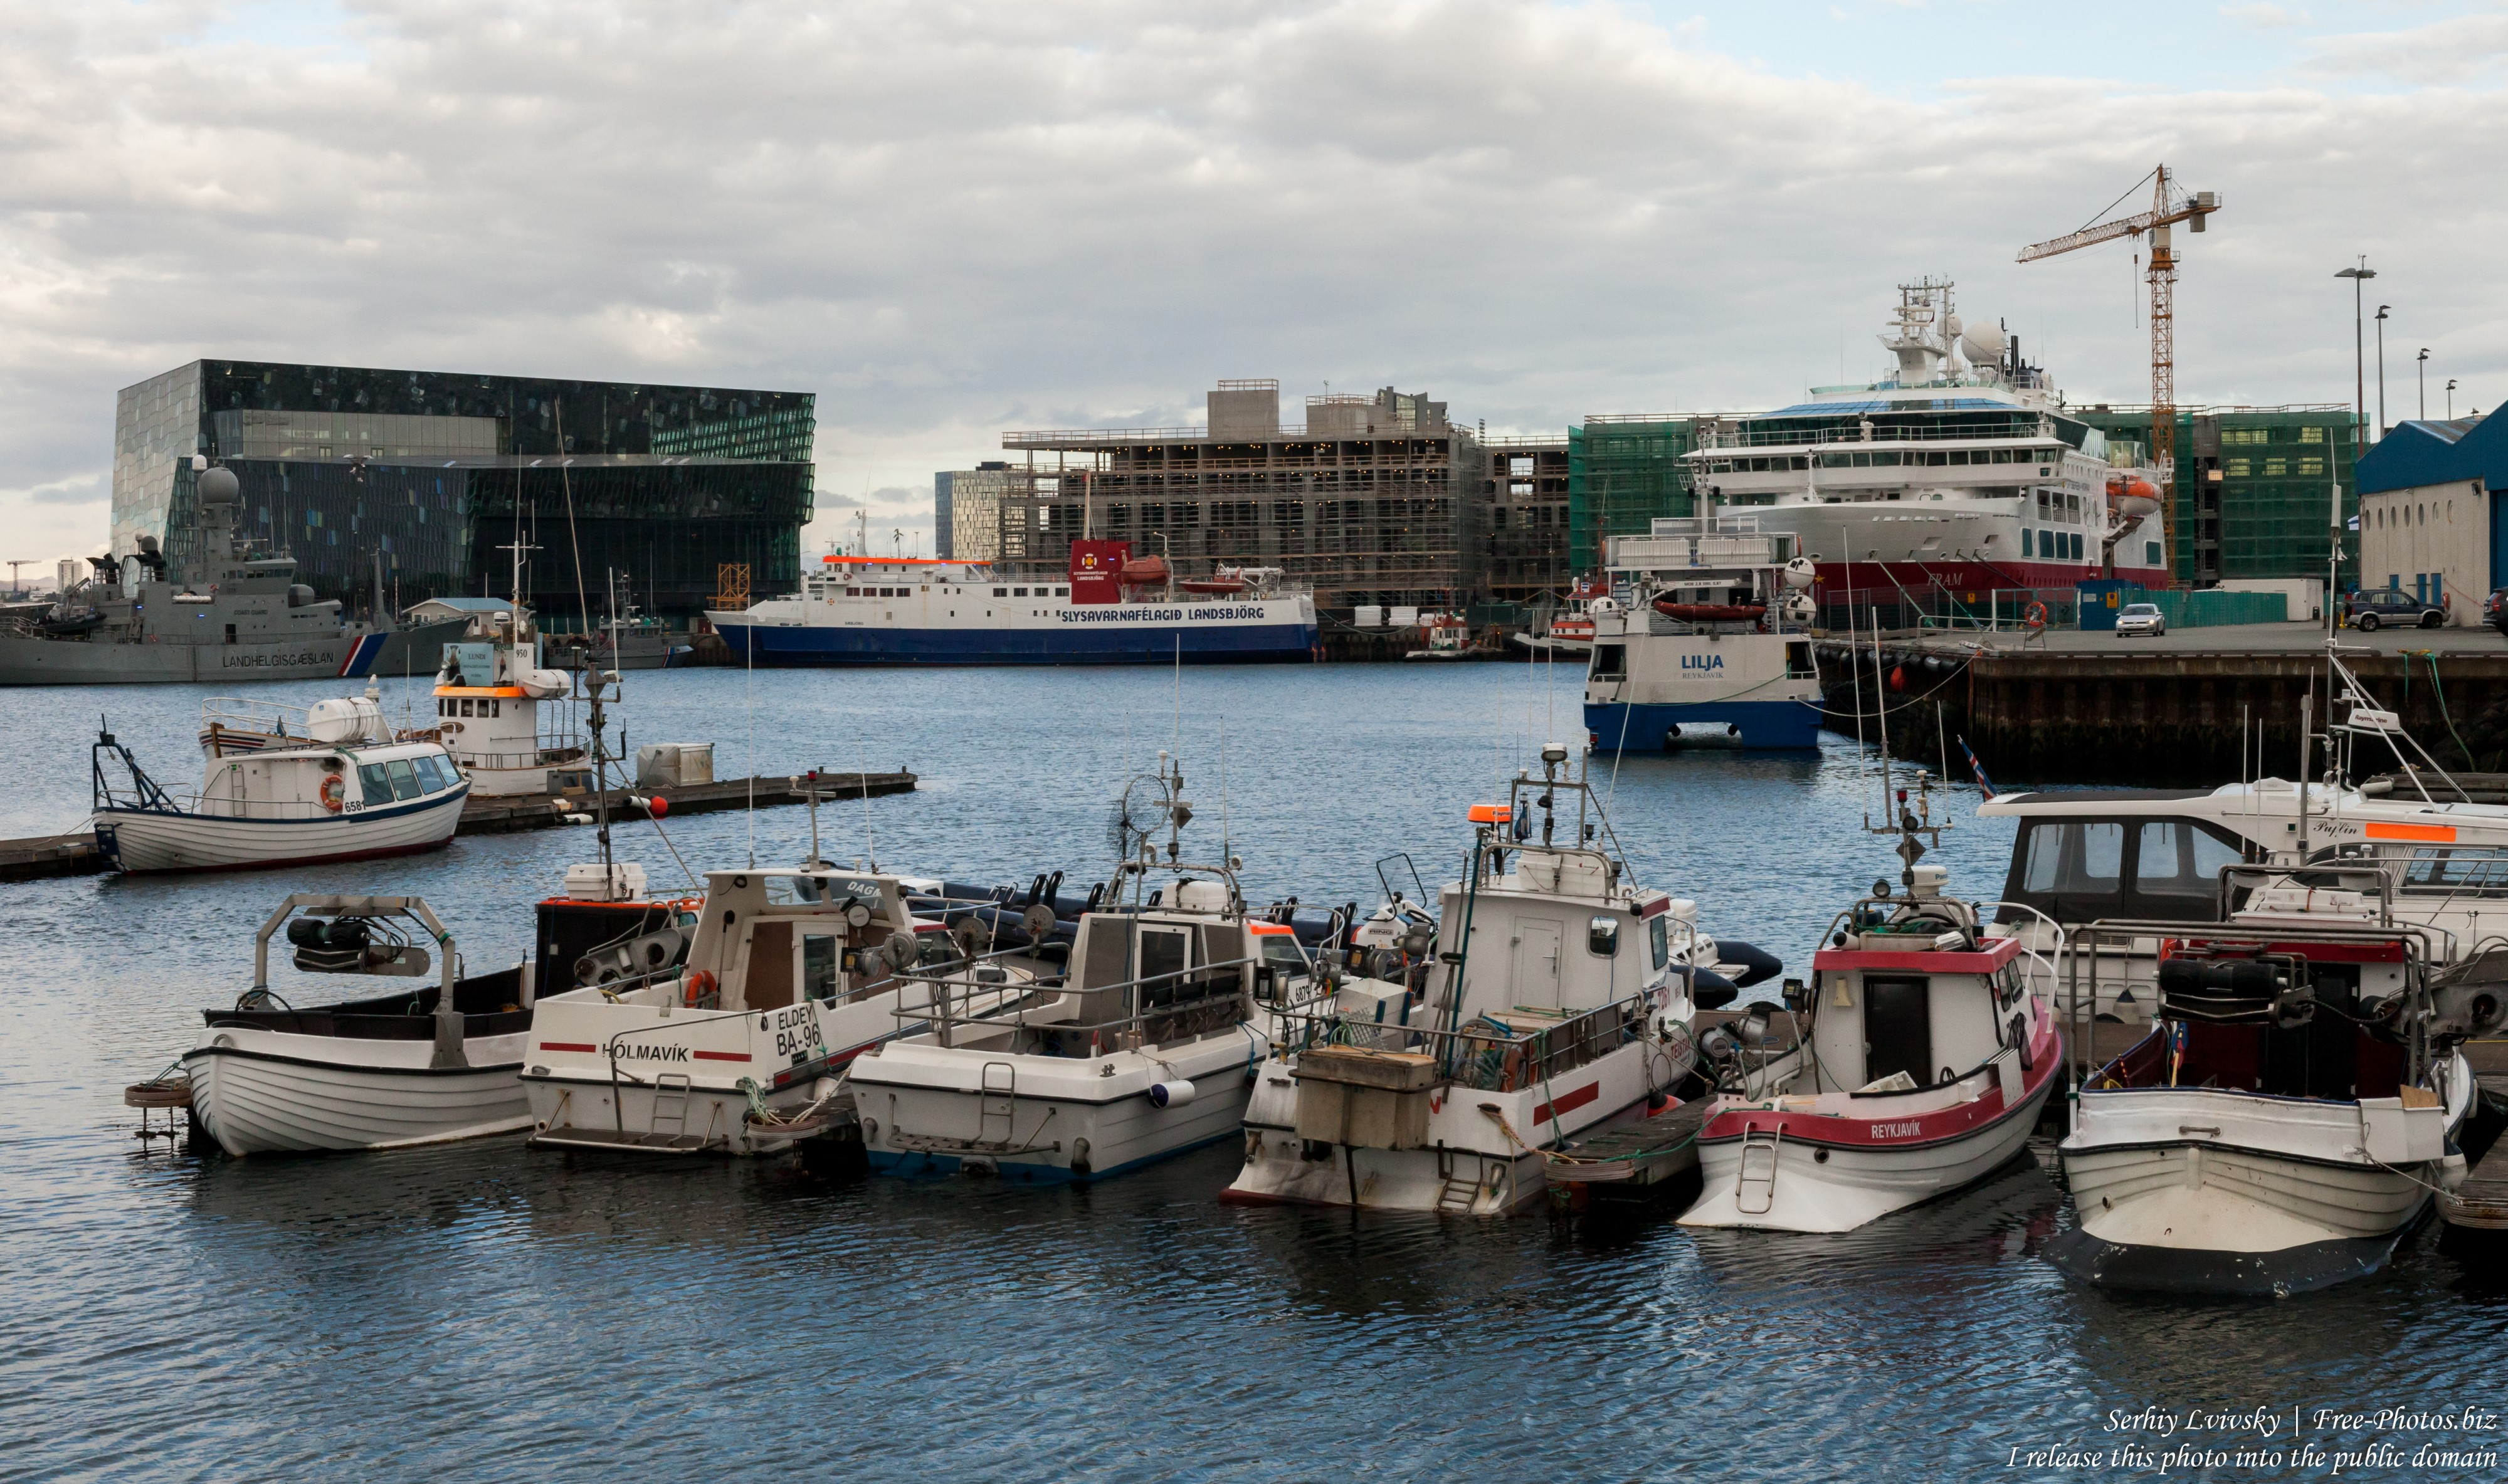 Reykjavik, Iceland, photographed in May 2019 by Serhiy Lvivsky, picture 68